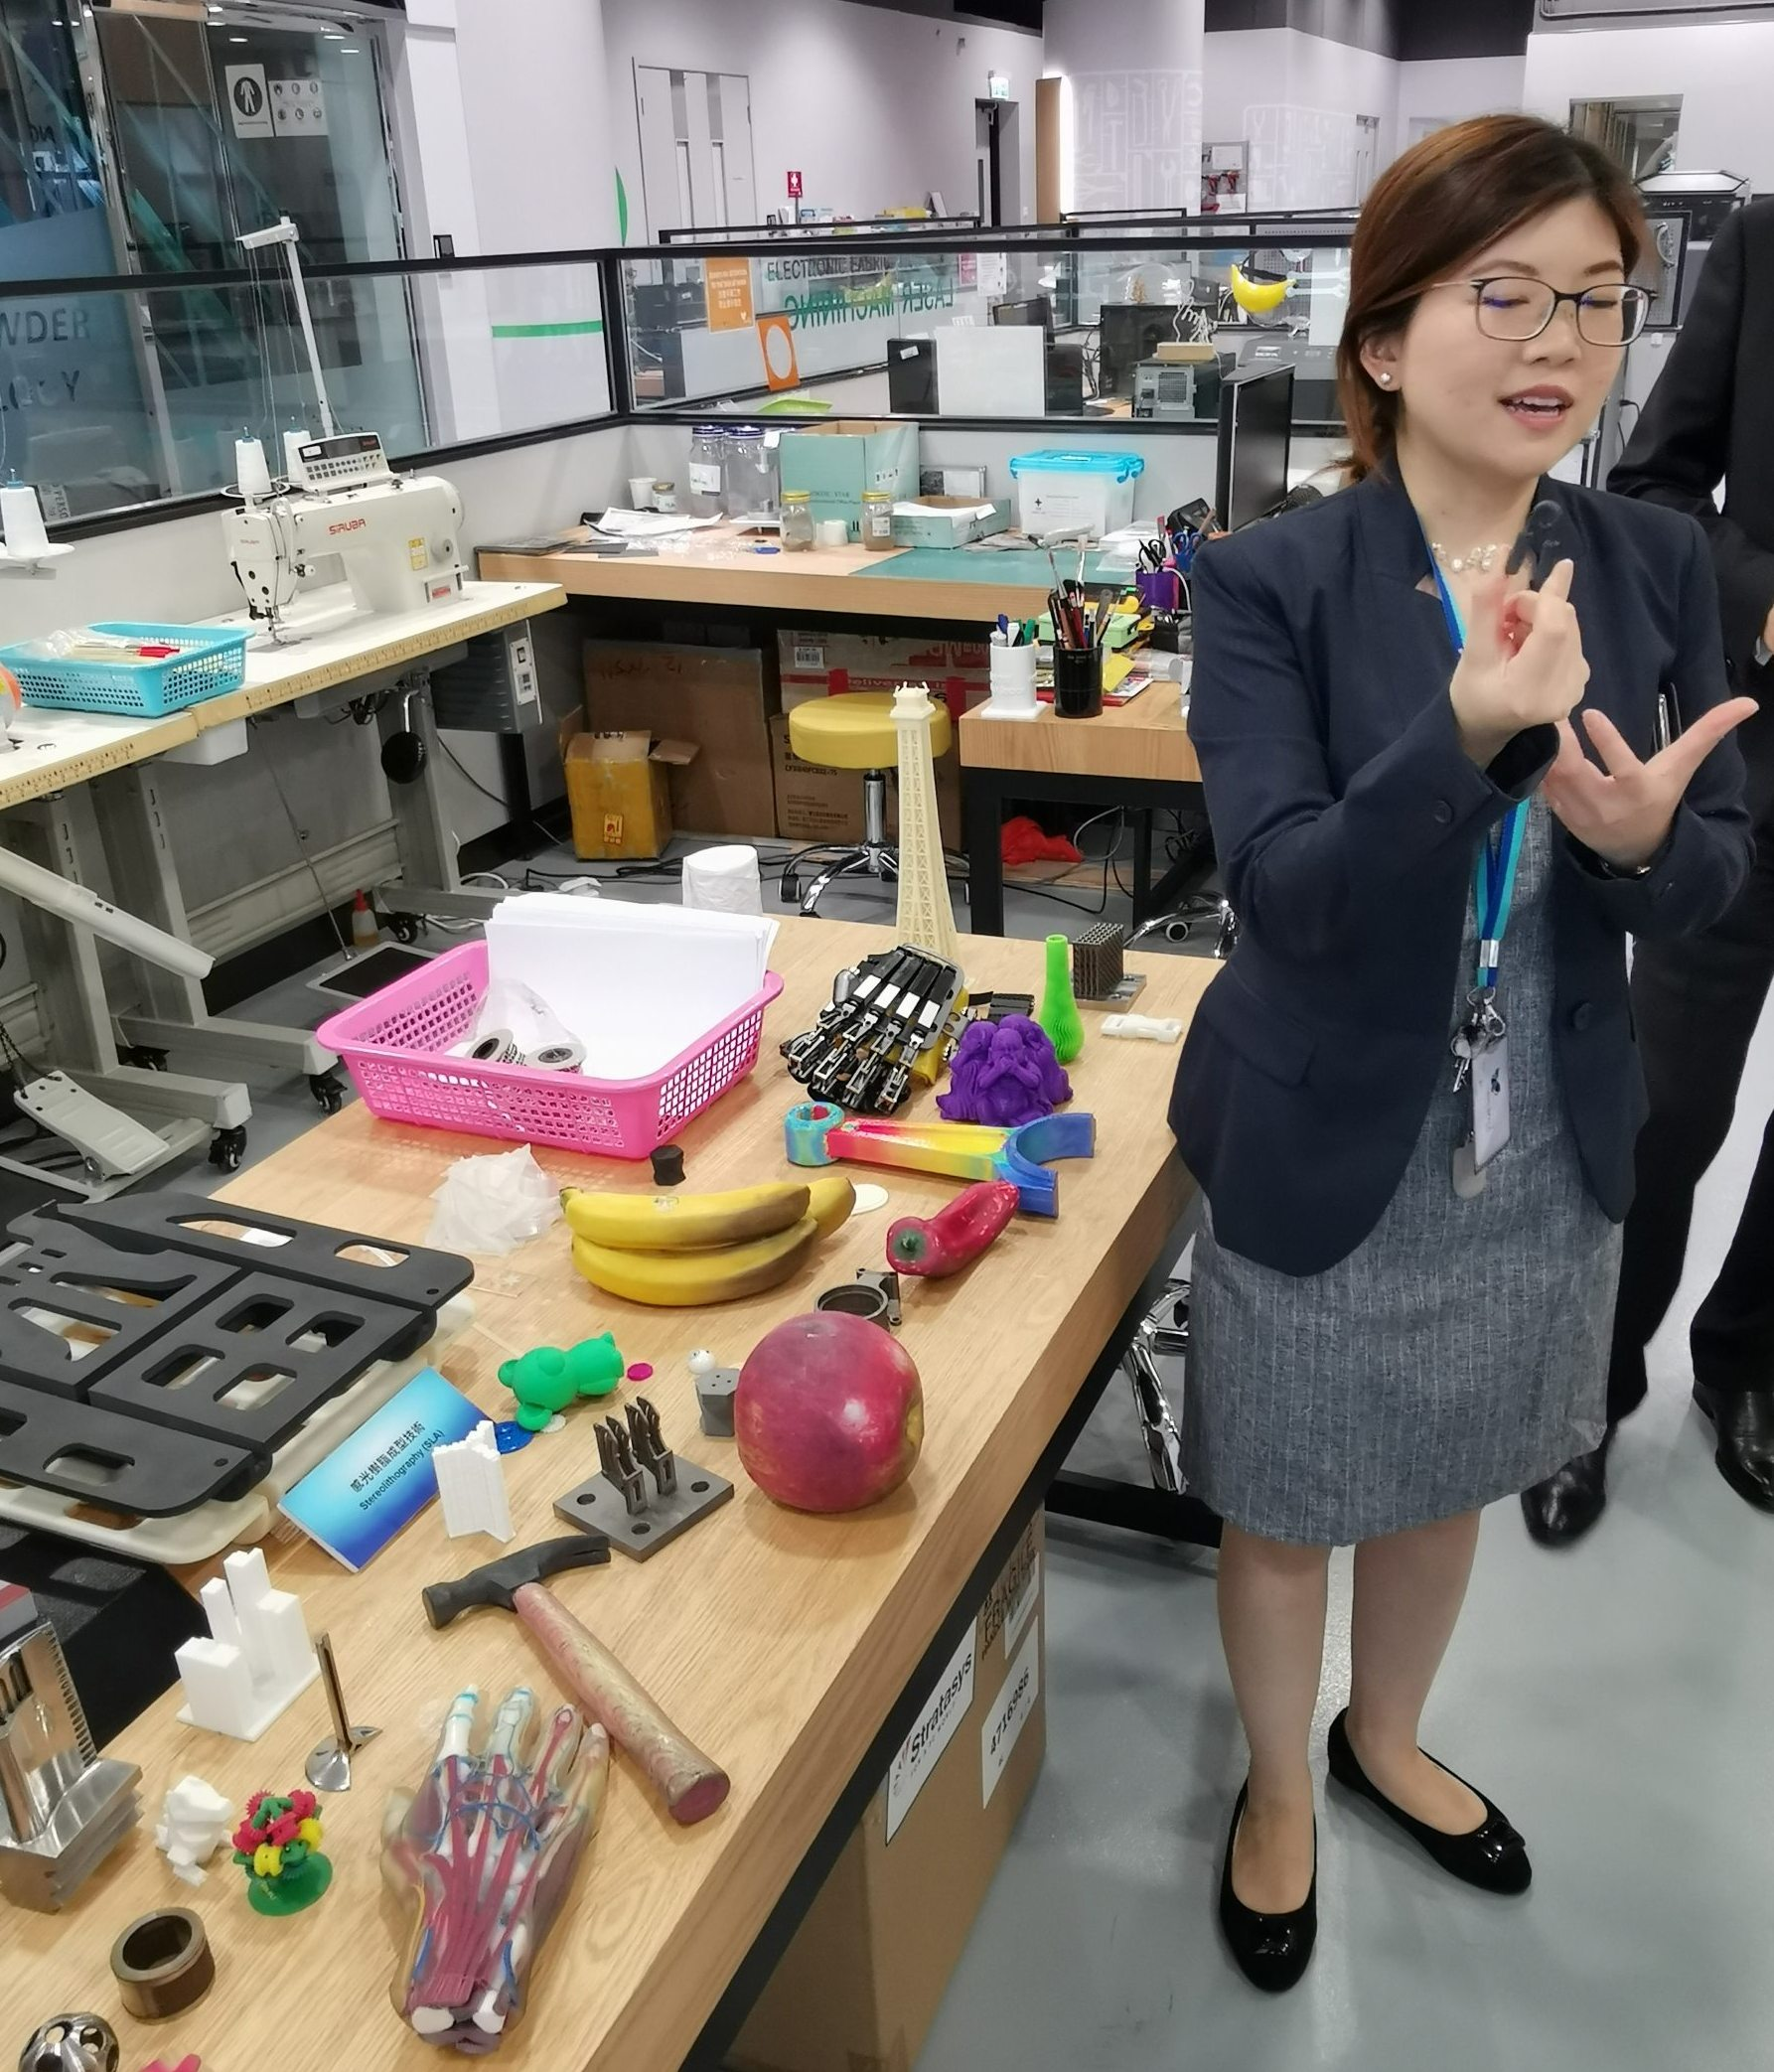 Stephanie Huang, manager of the community innovation unit at HKPC, shows some 3D printed items in a prototyping lab.